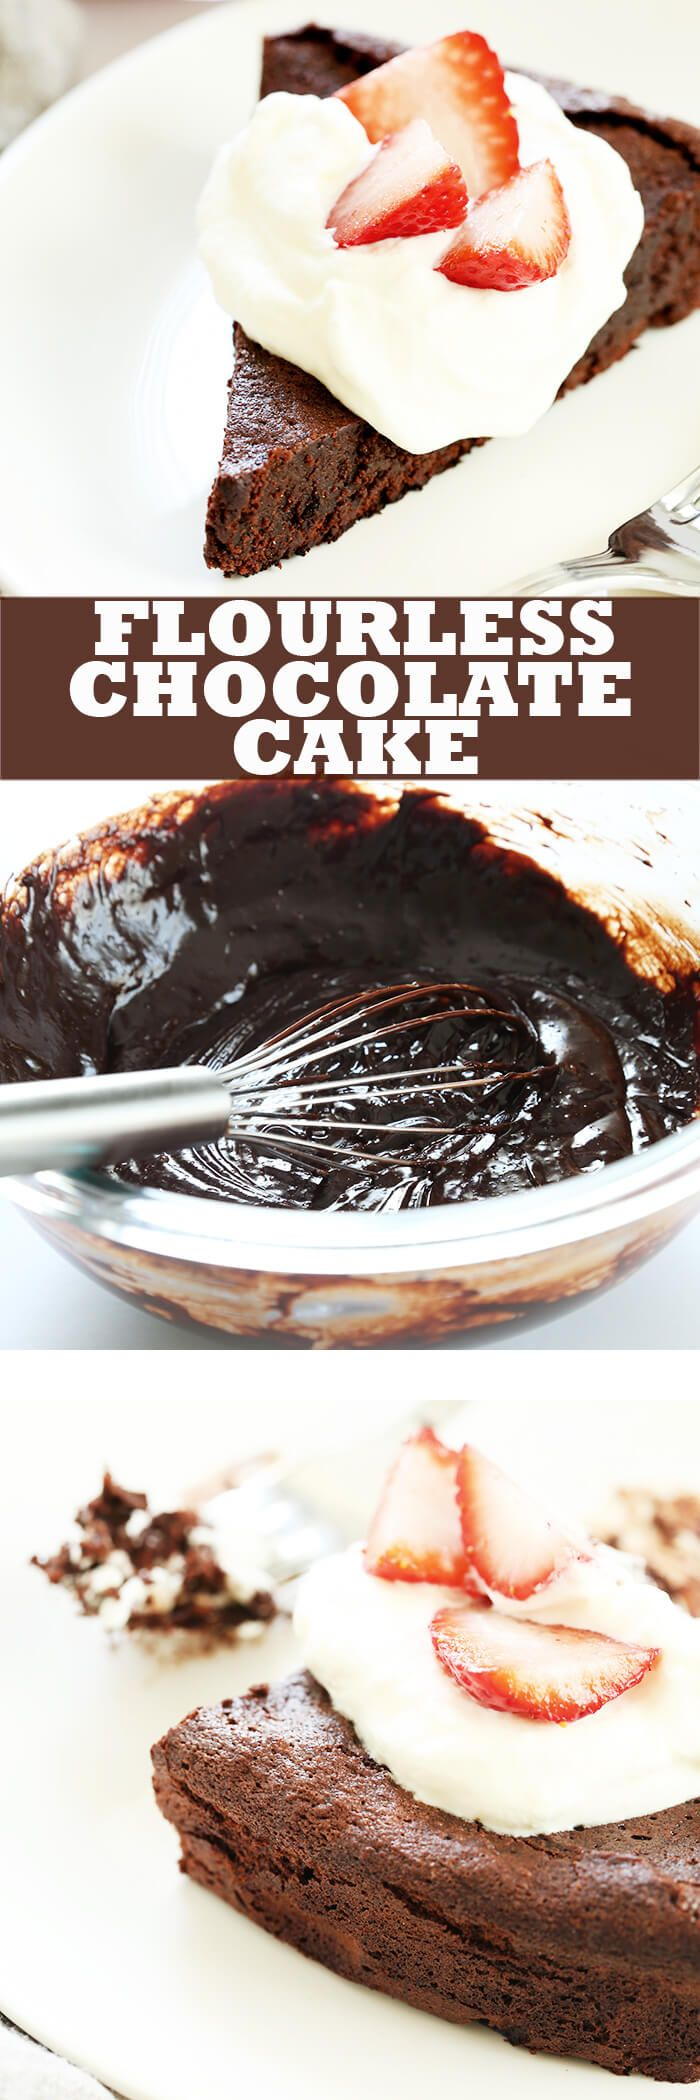 A flourless chocolate cake is one of those restaurant-style desserts that it's tempting to think is too fussy to make at home. It's naturally gluten free, and you can whip one up at home any time!